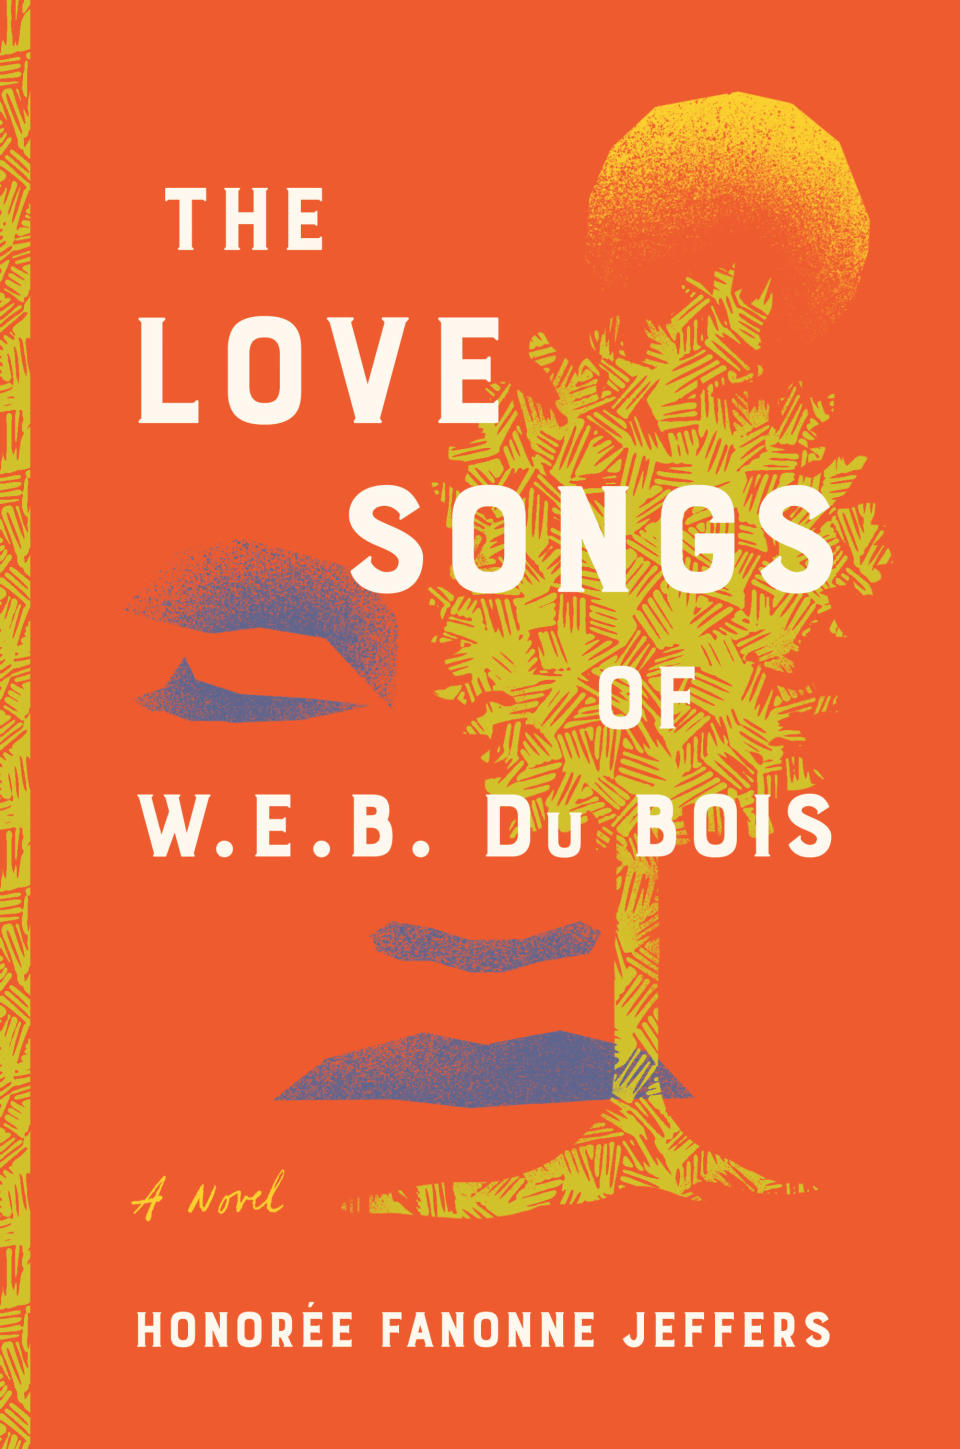 """This image released by Harper shows """"The Love Songs of W.E.B. DuBois,"""" a novel by Honorée Fanonne Jeffers. The book is an Oprah Winfrey book club pick. (Harper via AP)"""